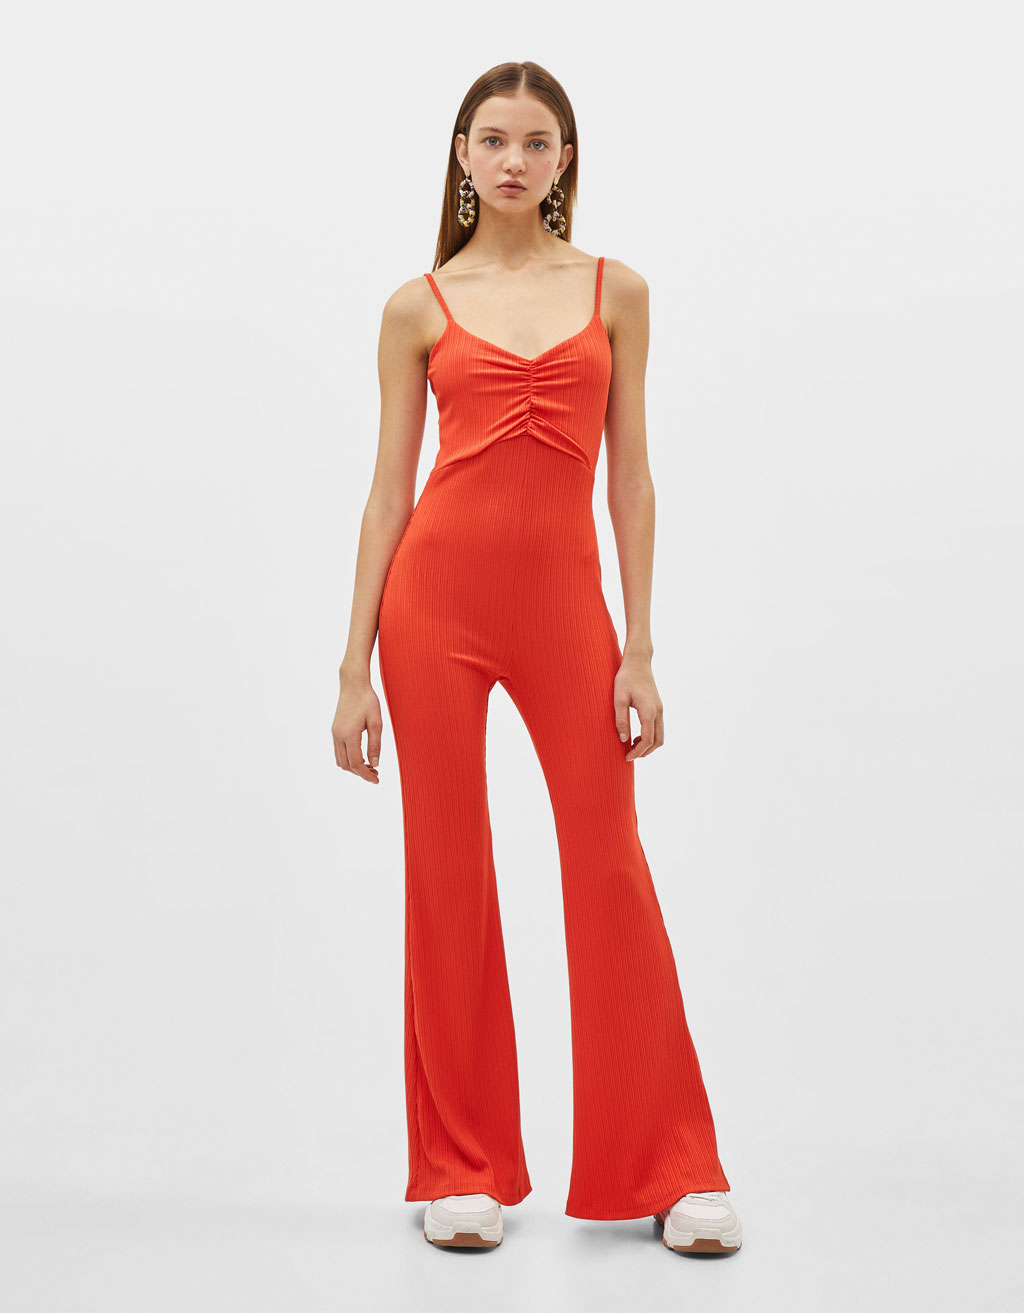 6aaaa90d30f Women s Jumpsuits   Dungarees - Spring Summer 2019